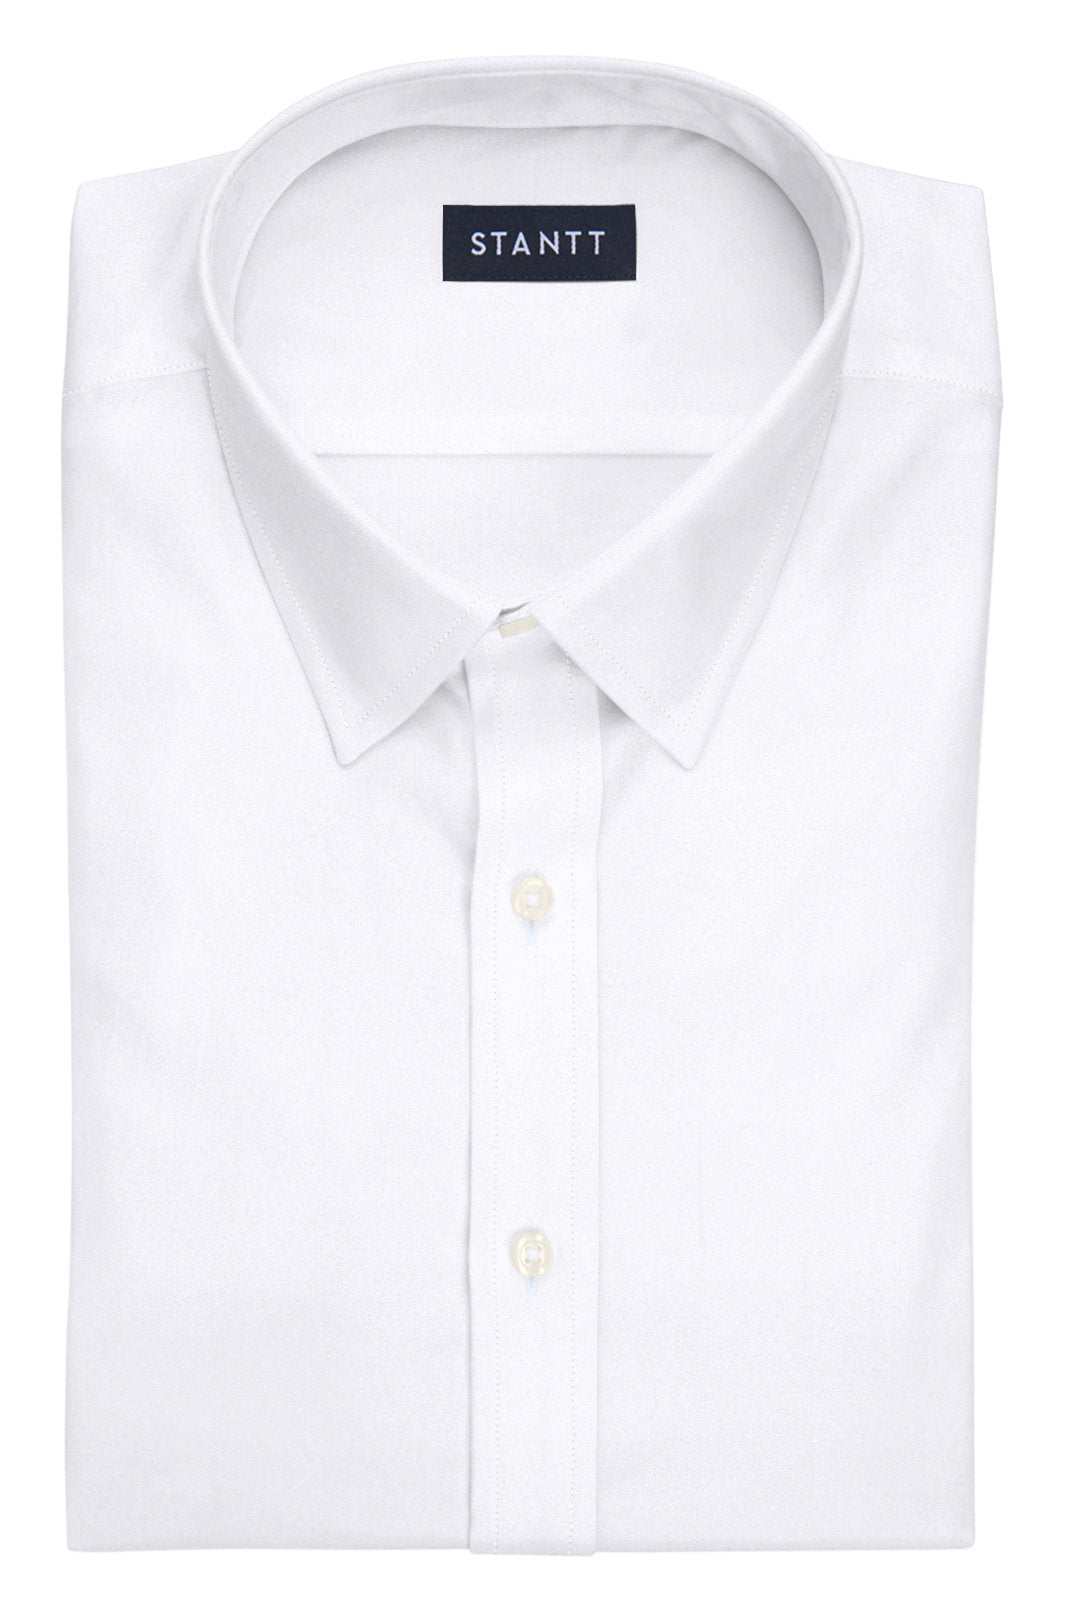 White Oxford: Semi-Spread Collar, French Cuff